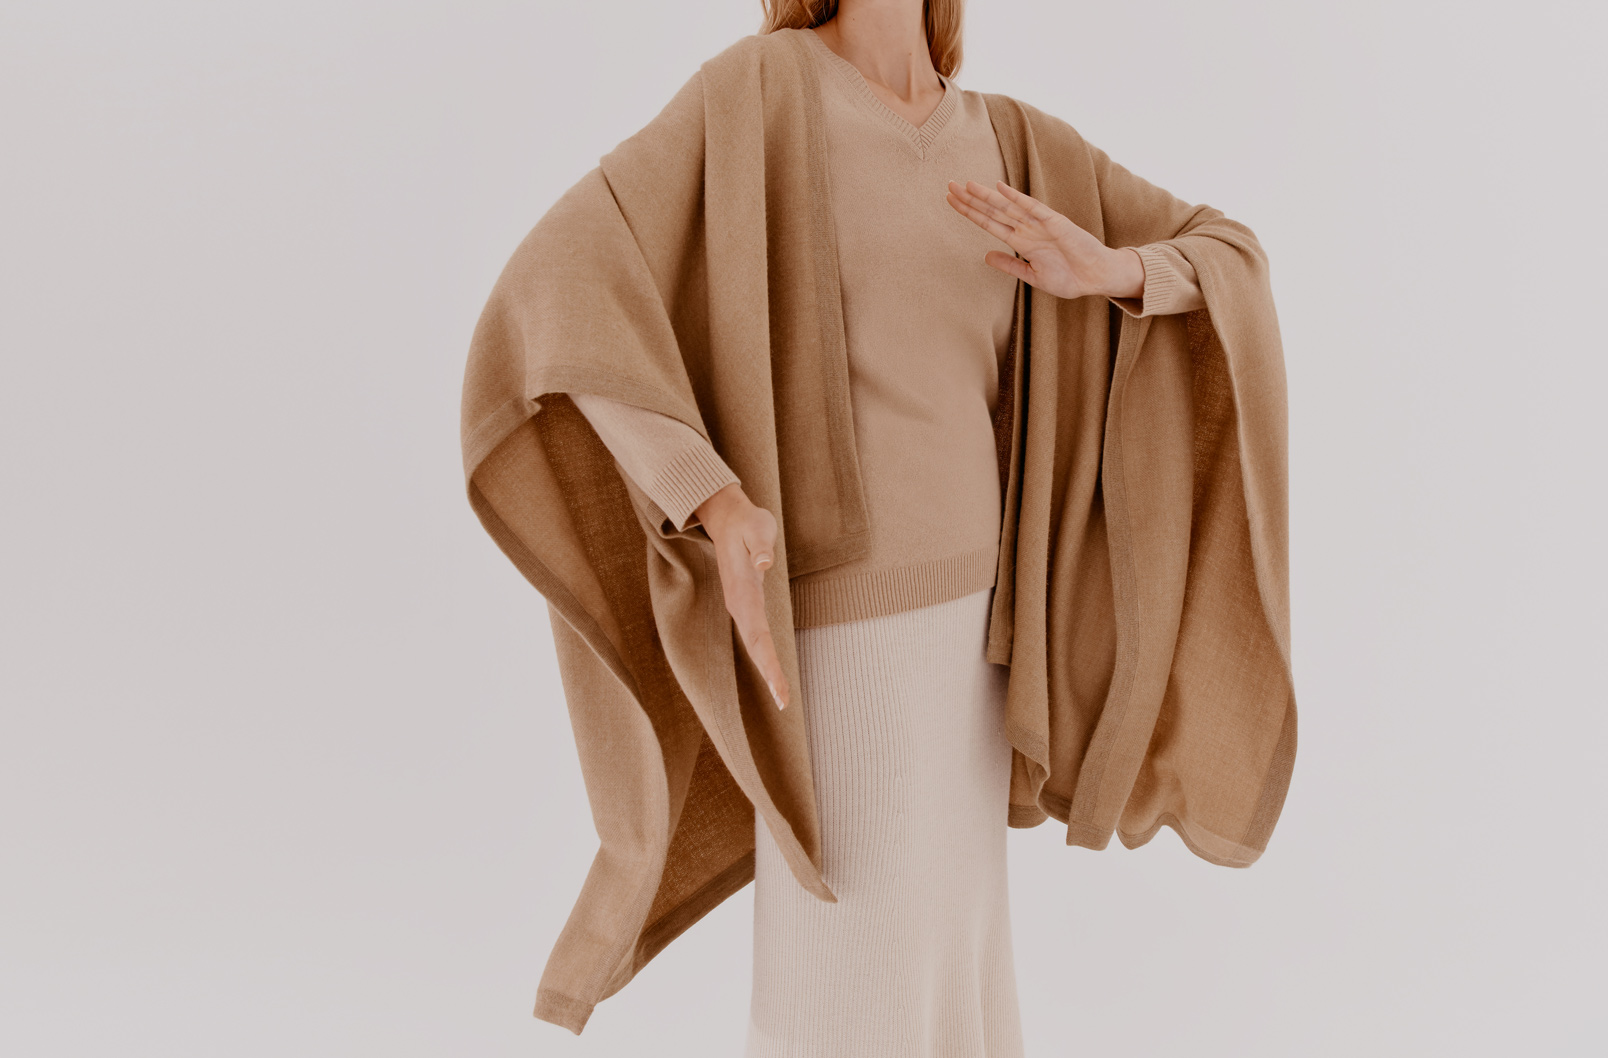 Model wearing Cuyana Baby Alpaca Square Edge Cape